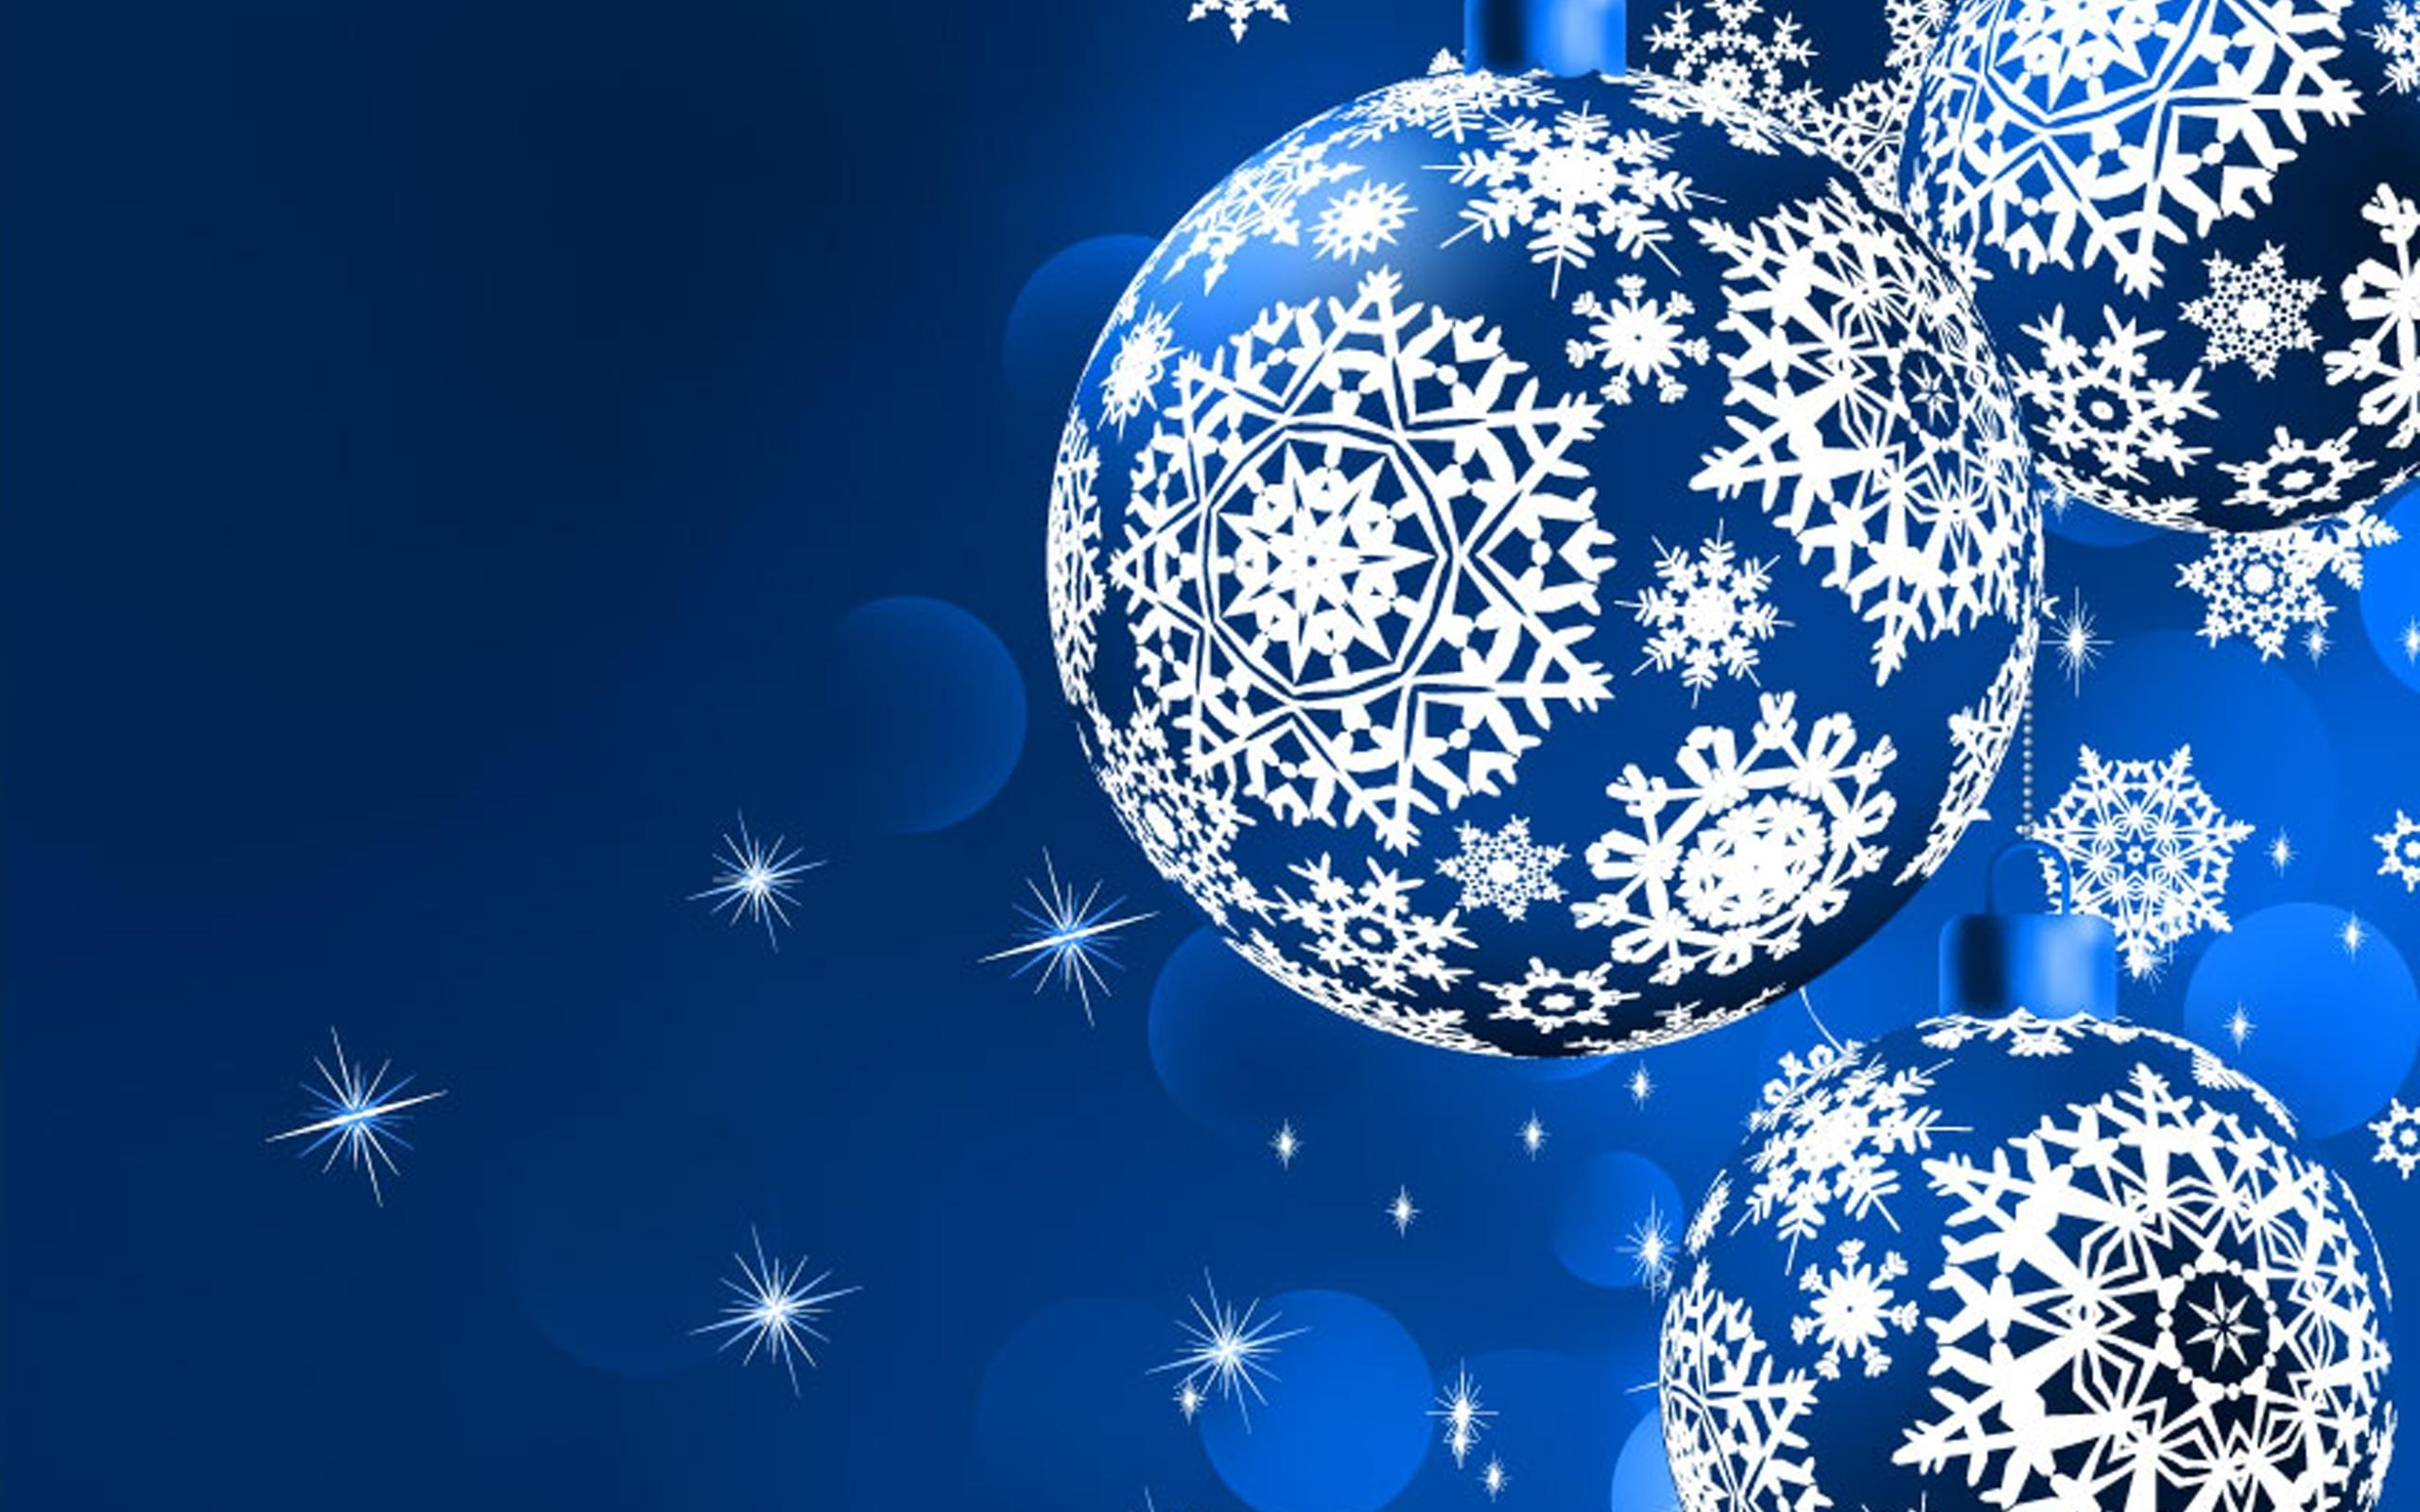 Blue Snowflake Cool Wallpaper Photography